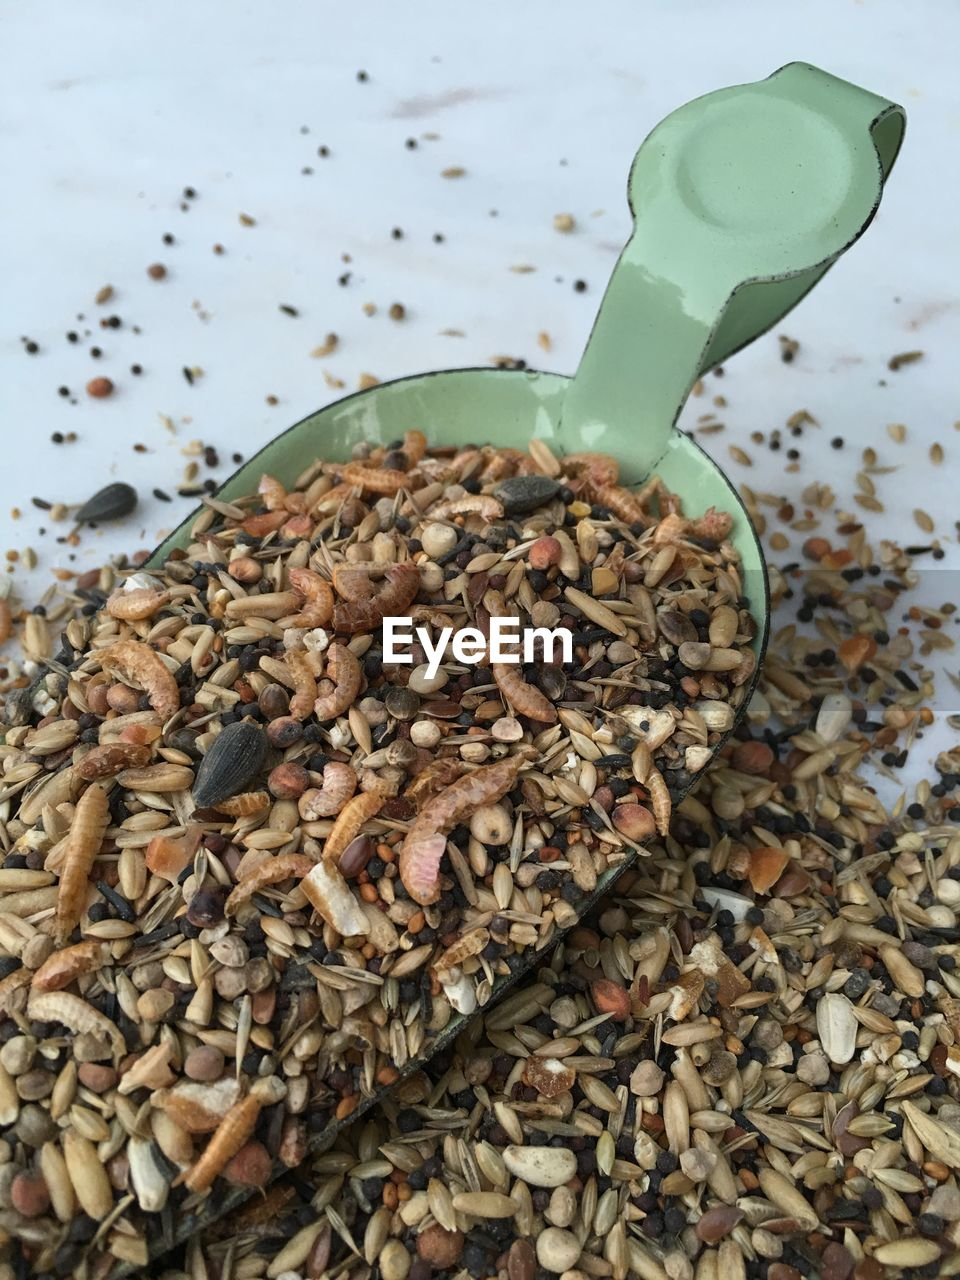 Close-up of various seeds and worms in shovel